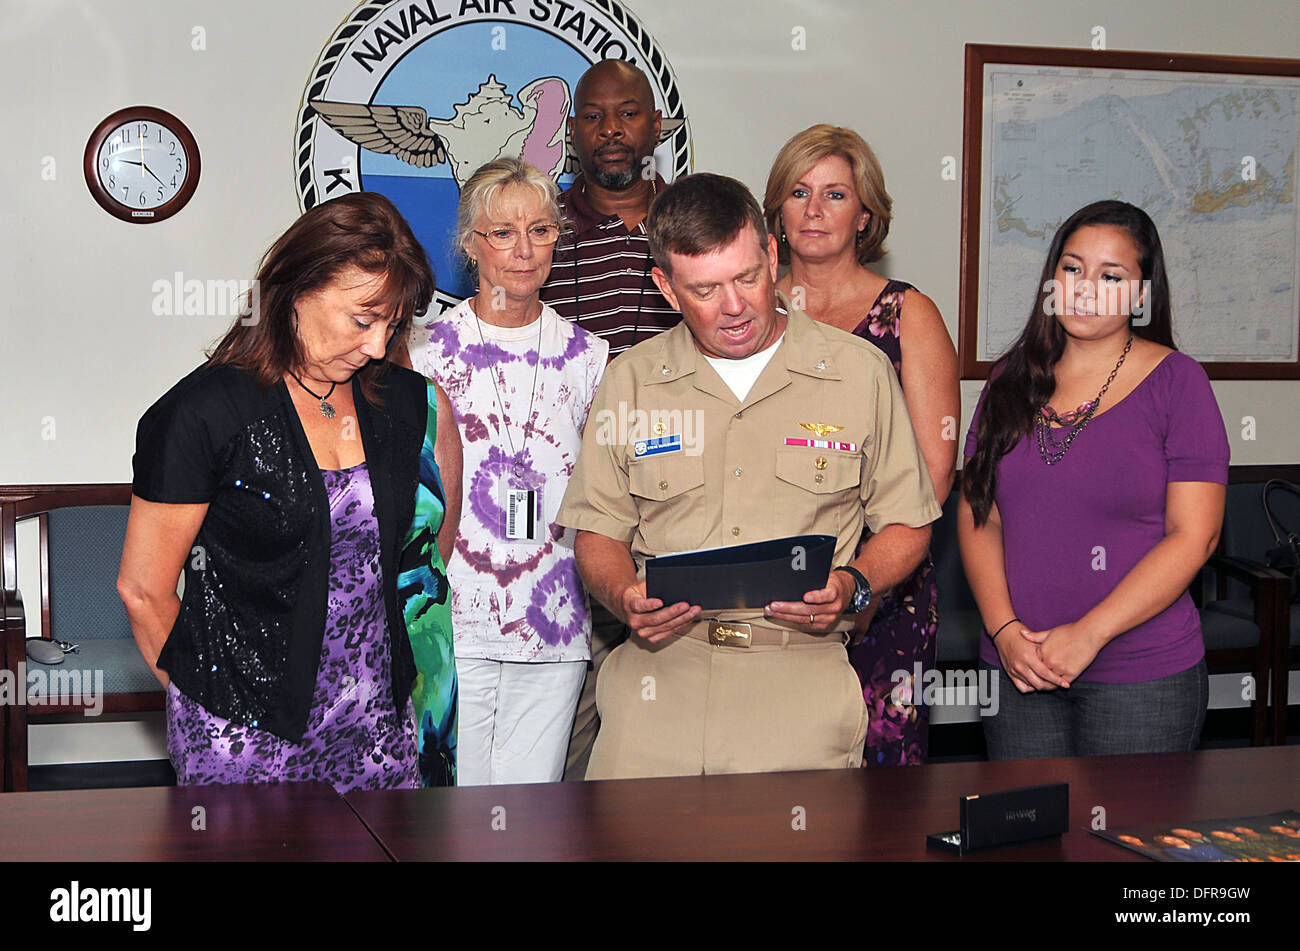 Naval Air Station (NAS) Key West Commanding Officer Capt. Steve McAlearney reads the proclamation of domestic violence awareness month at Boca Chica Field. NAS Key West is a state-of-the-art training facility for air-to-air combat fighter aircraft of all - Stock Image